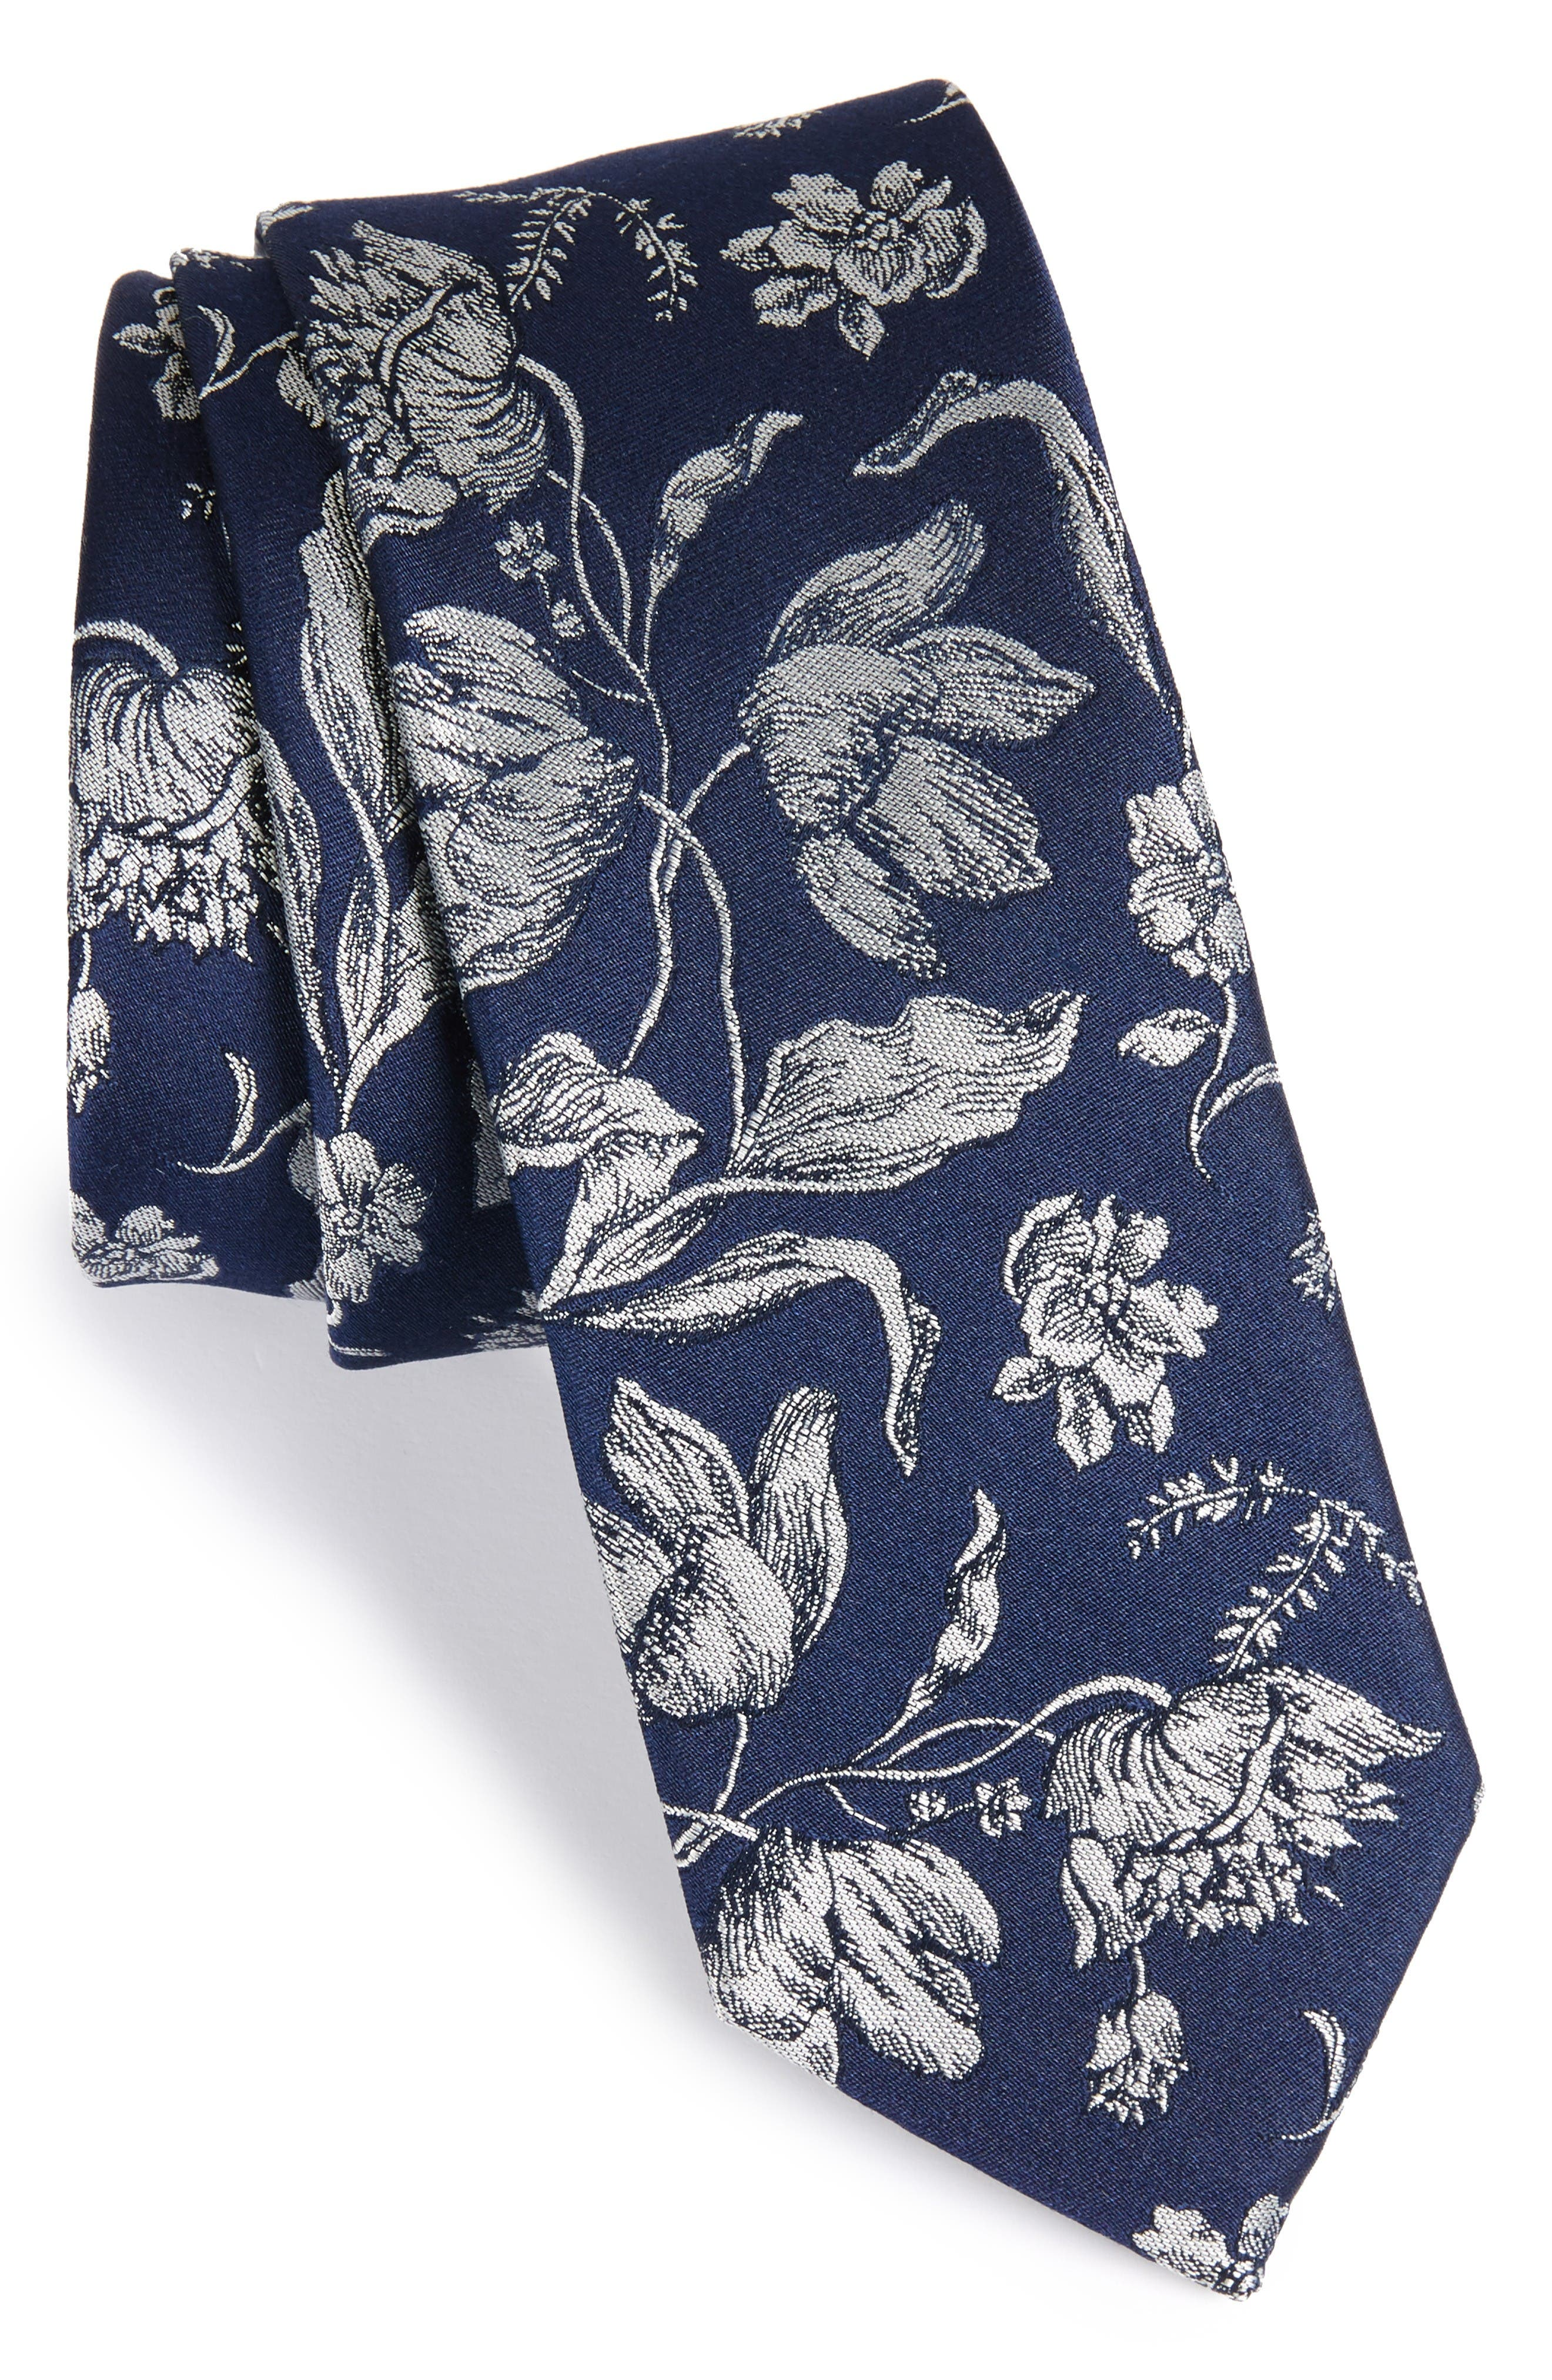 Main Image - The Tie Bar Floral Swell Silk Skinny Tie